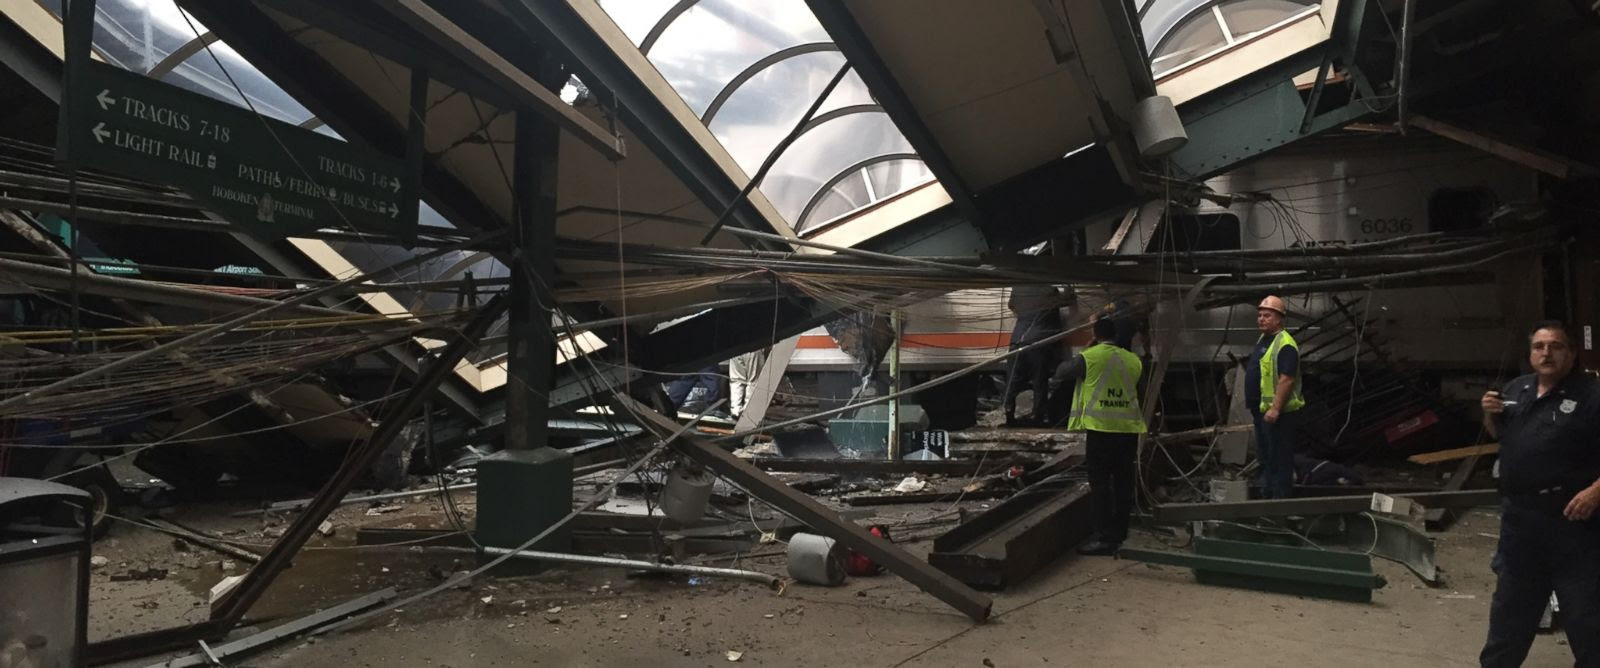 Image result for NJ Transit spokeswoman says that more 100 injured, some critically, in commuter train crash.